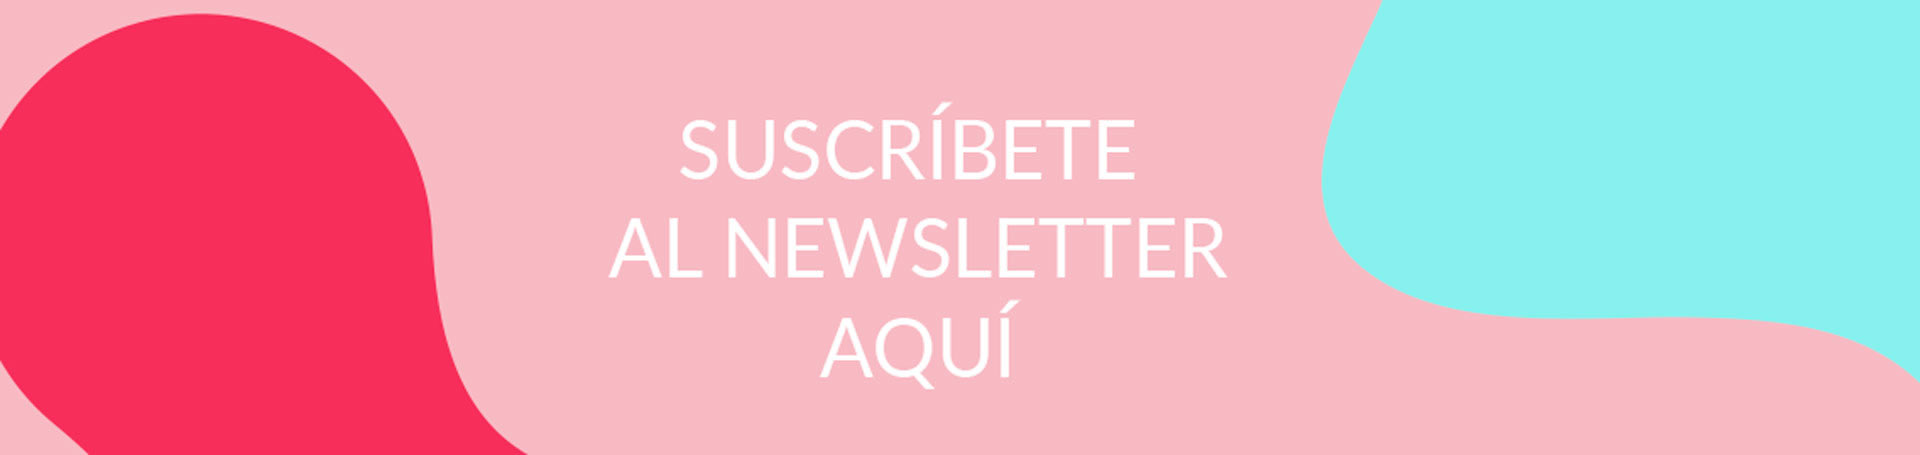 Cosmobeauty - Suscribete PC